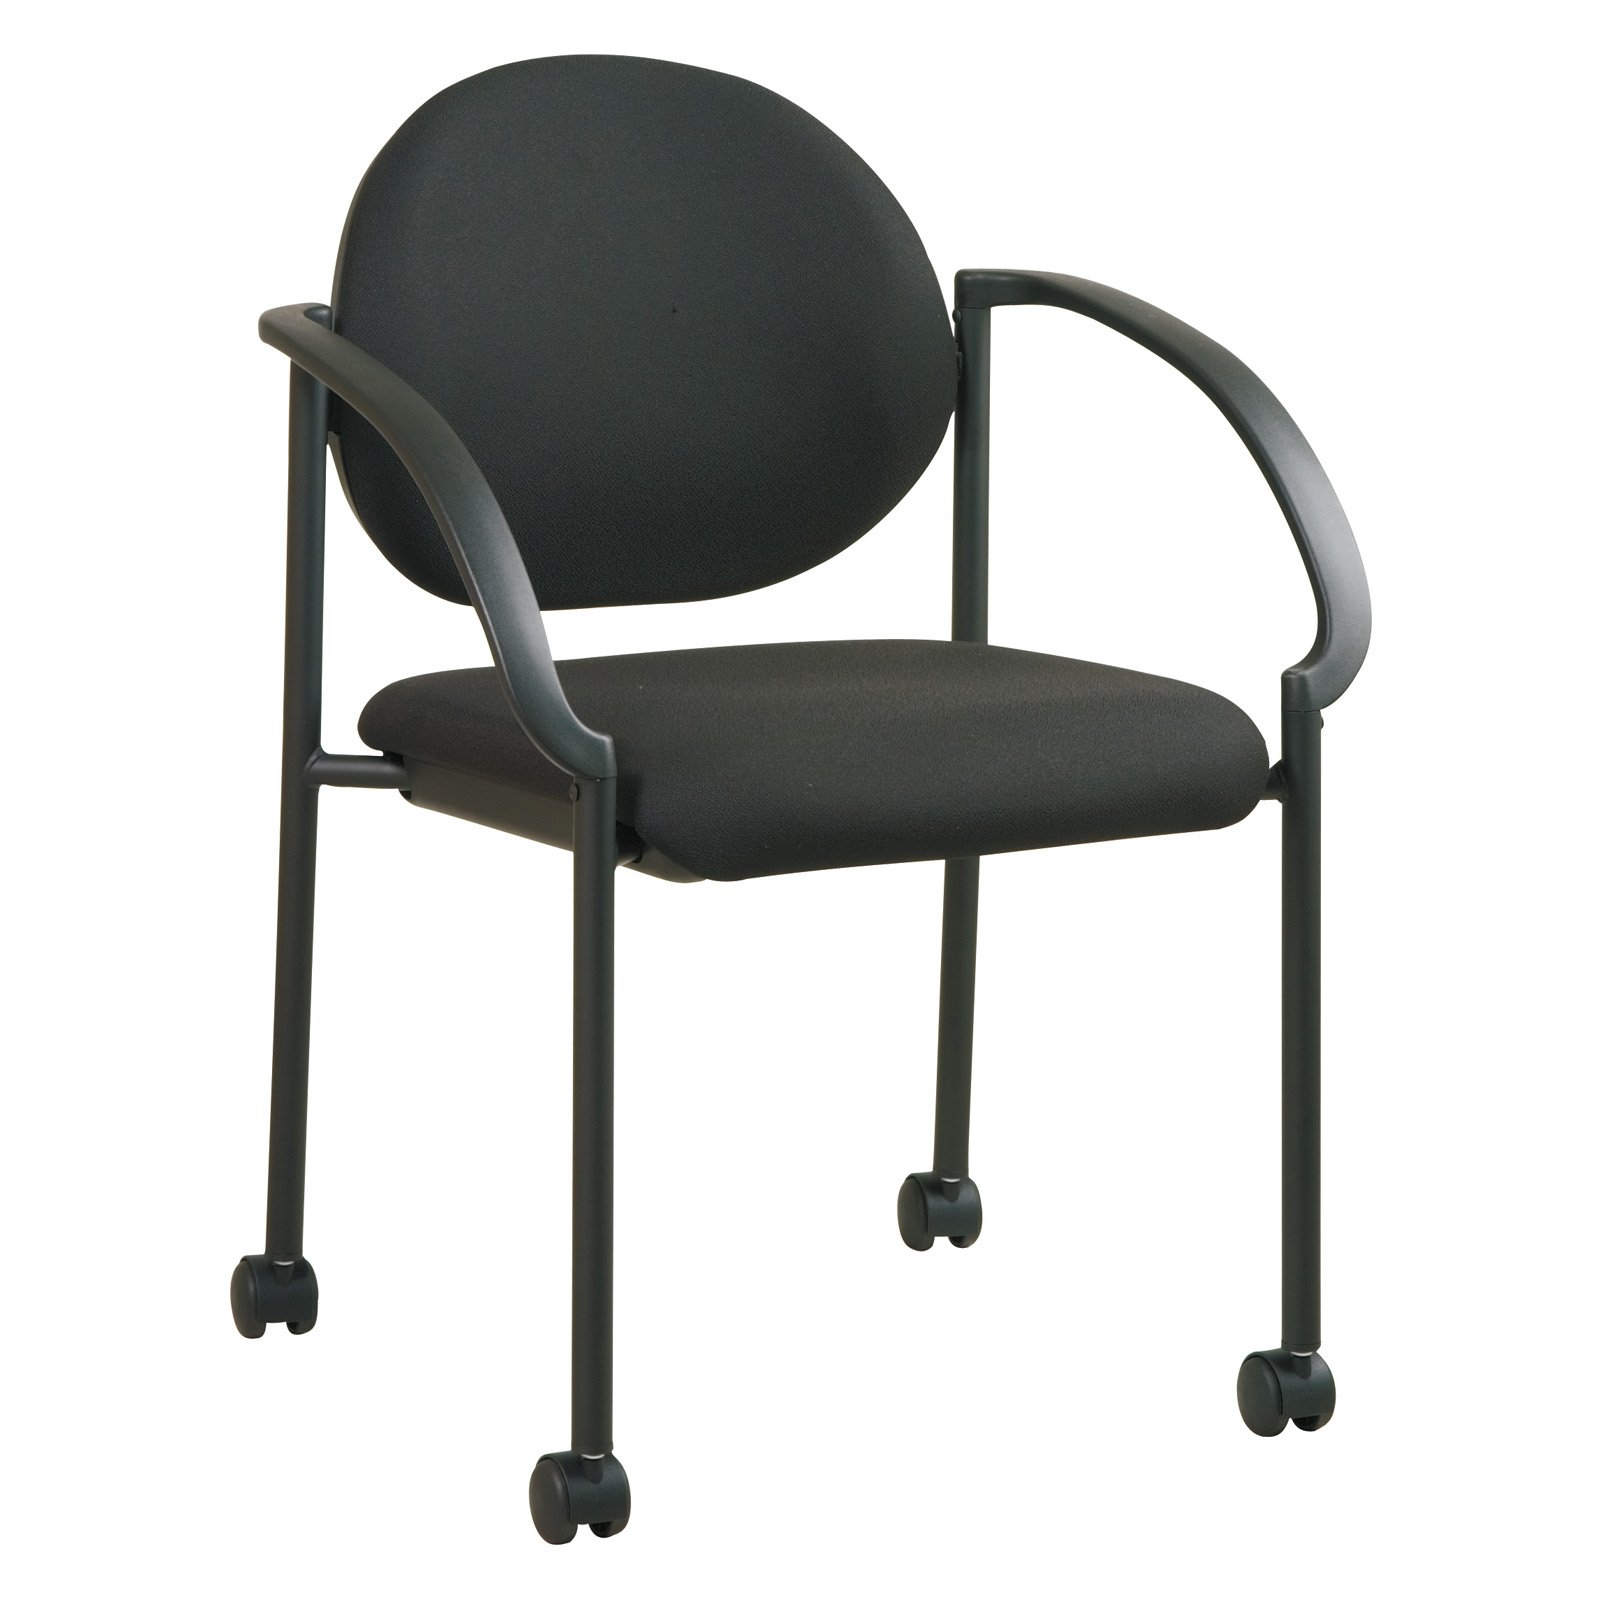 Stack Chairs with Casters and Arms, Black